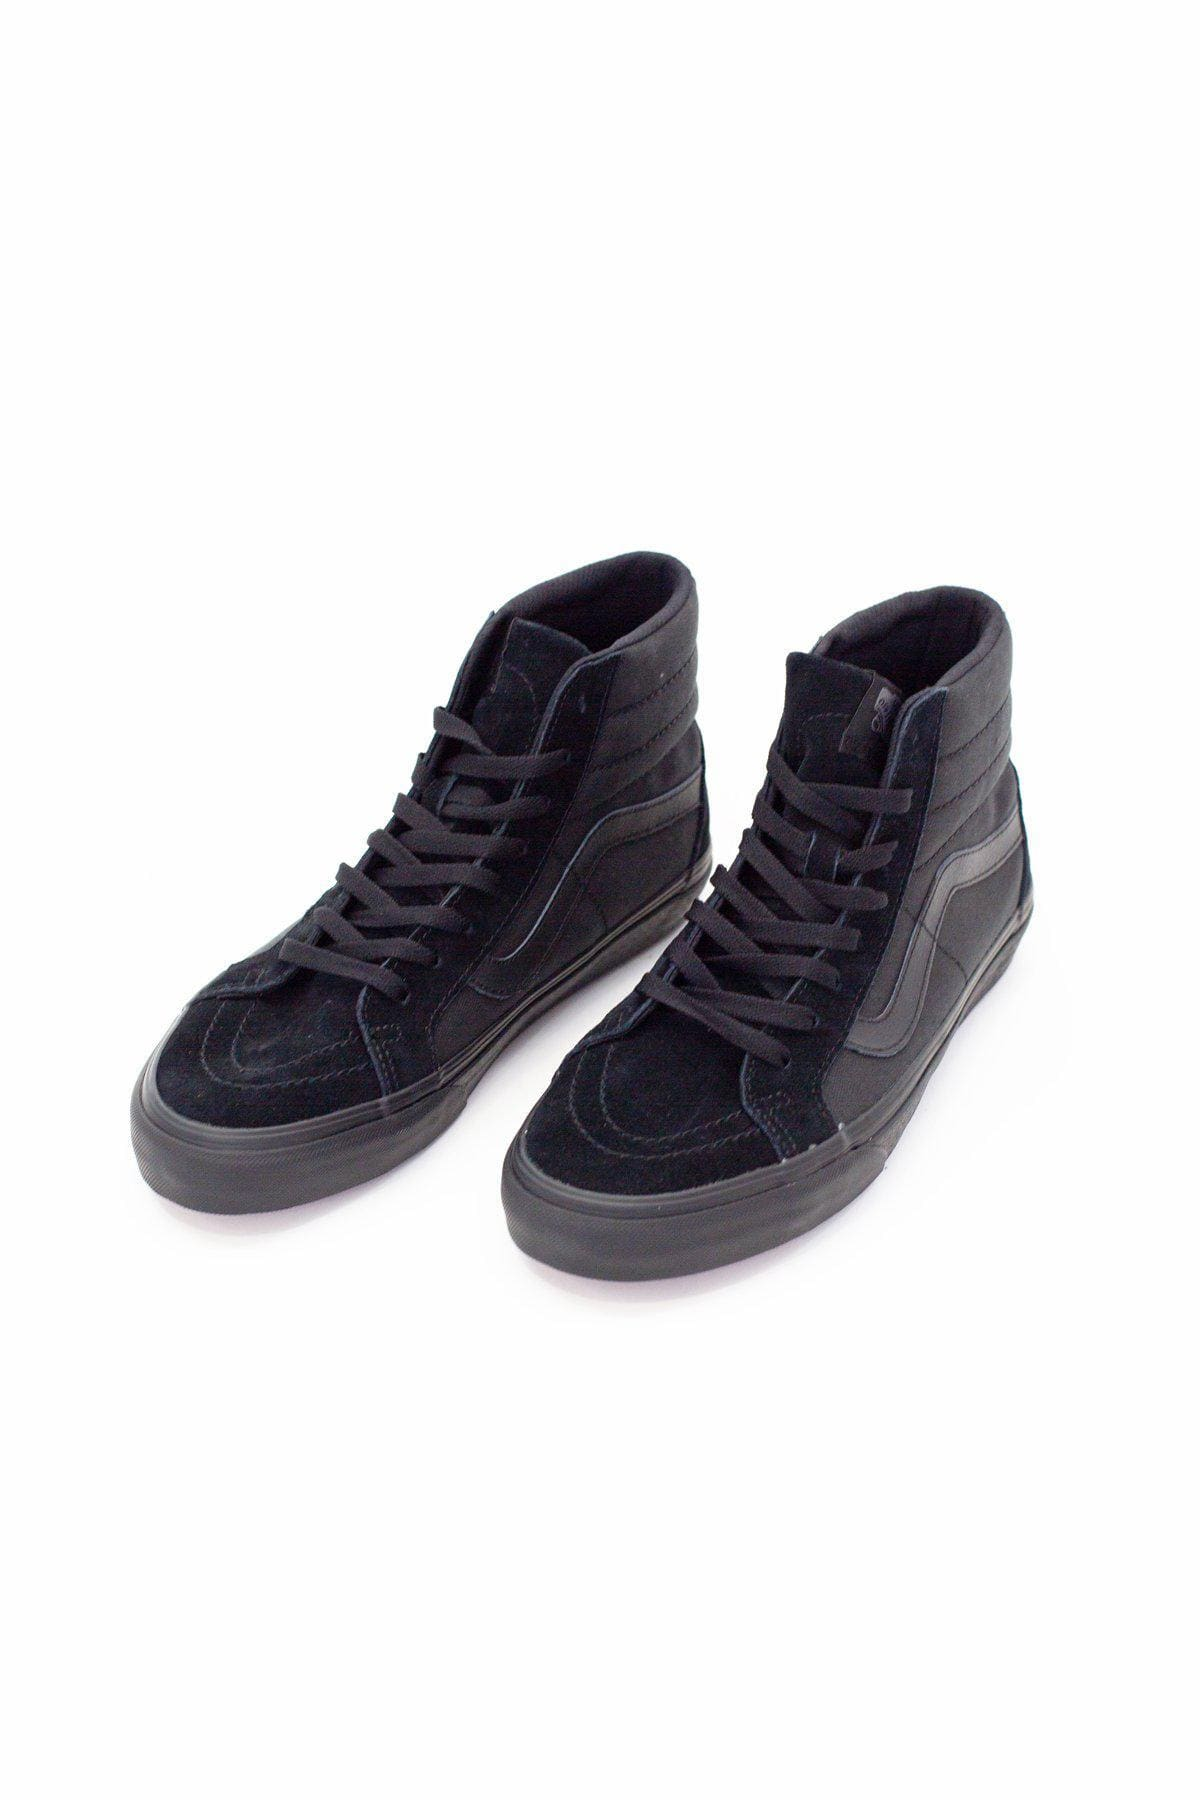 4a0868aea9 Vans Made For The Makers SK8-Hi Reissue UC